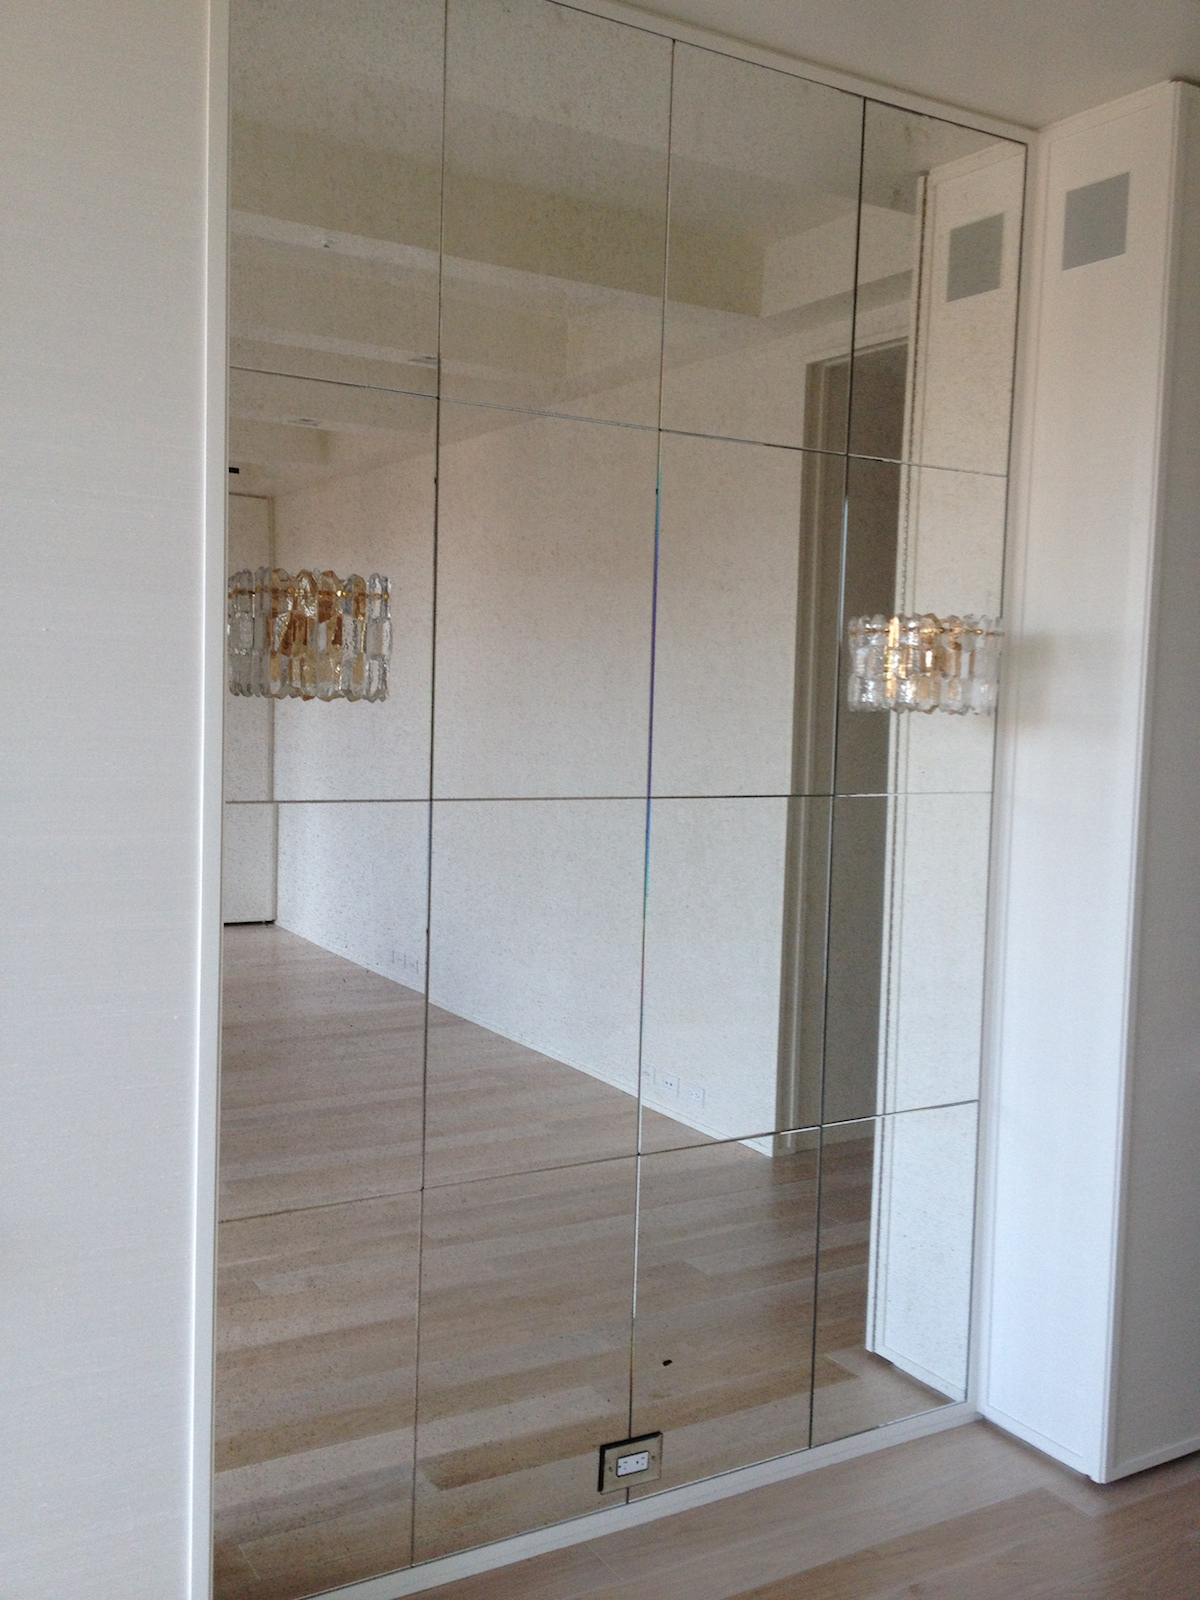 Install Wall Mirrors Without Damaging Your Apartment Walls Centreville Va Glass Mirror Blog